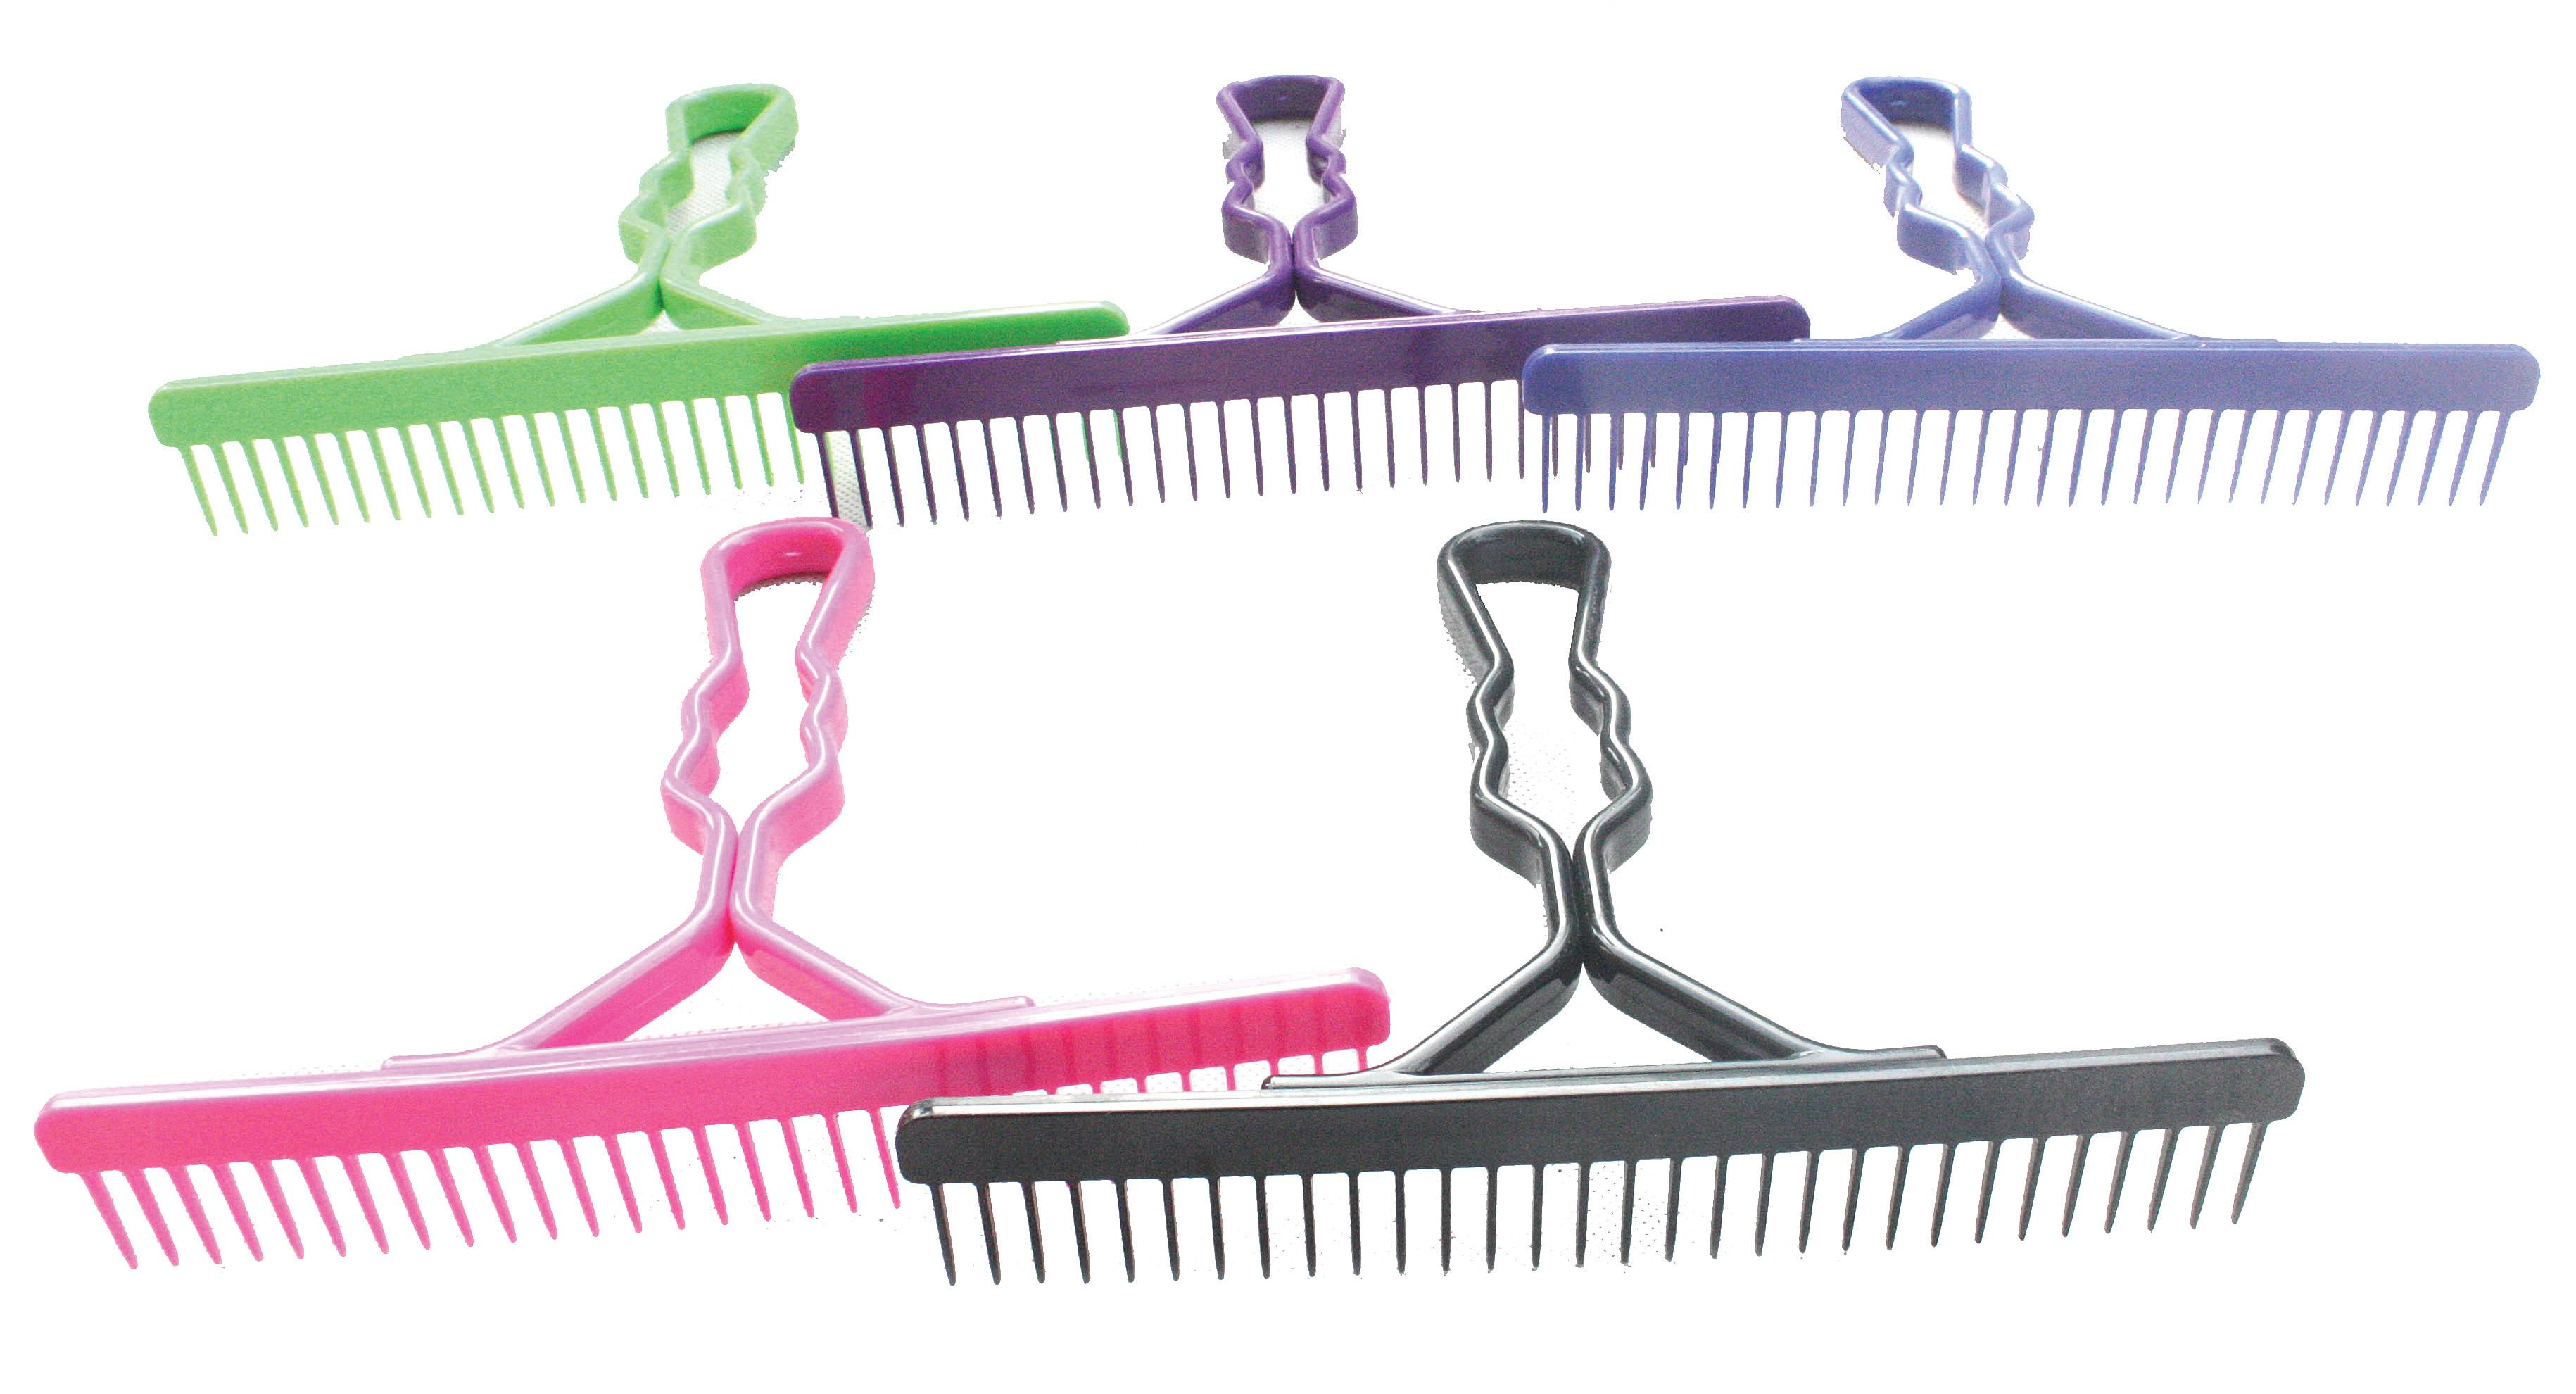 Partrade Skip Tooth Comb Plastic